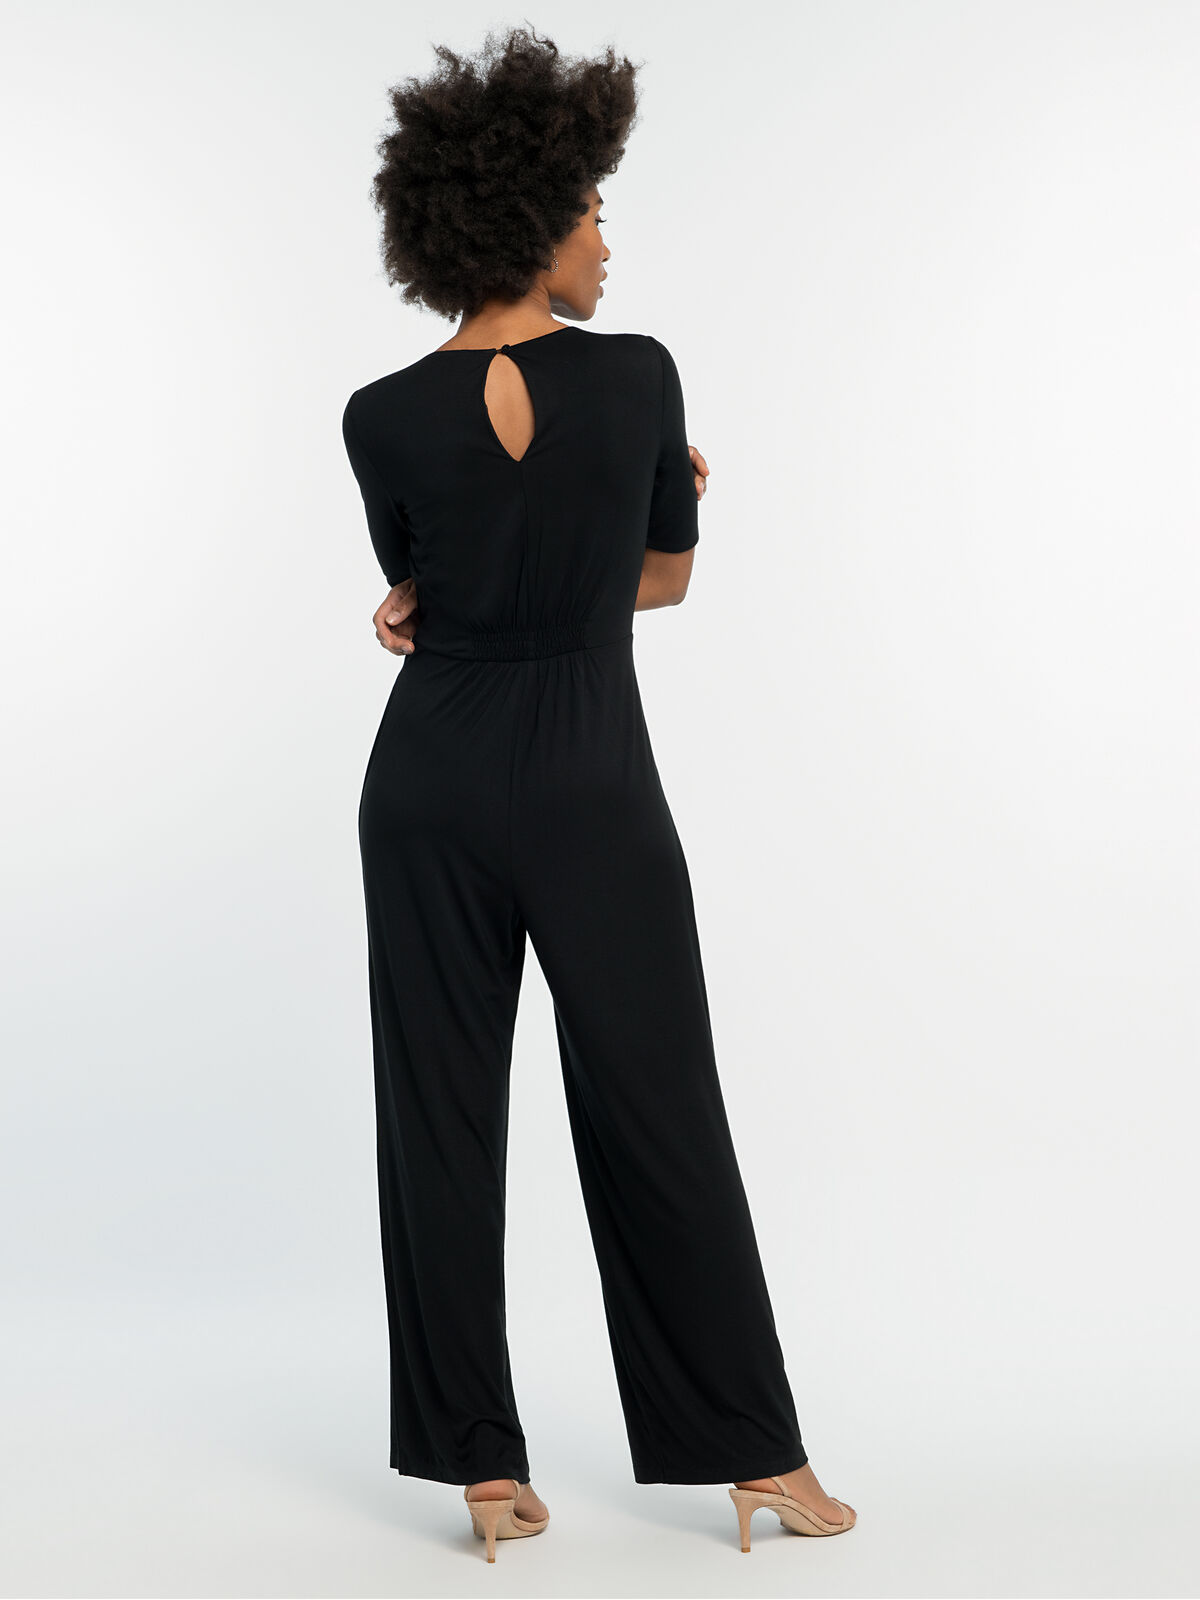 Eaze Twist Jumpsuit